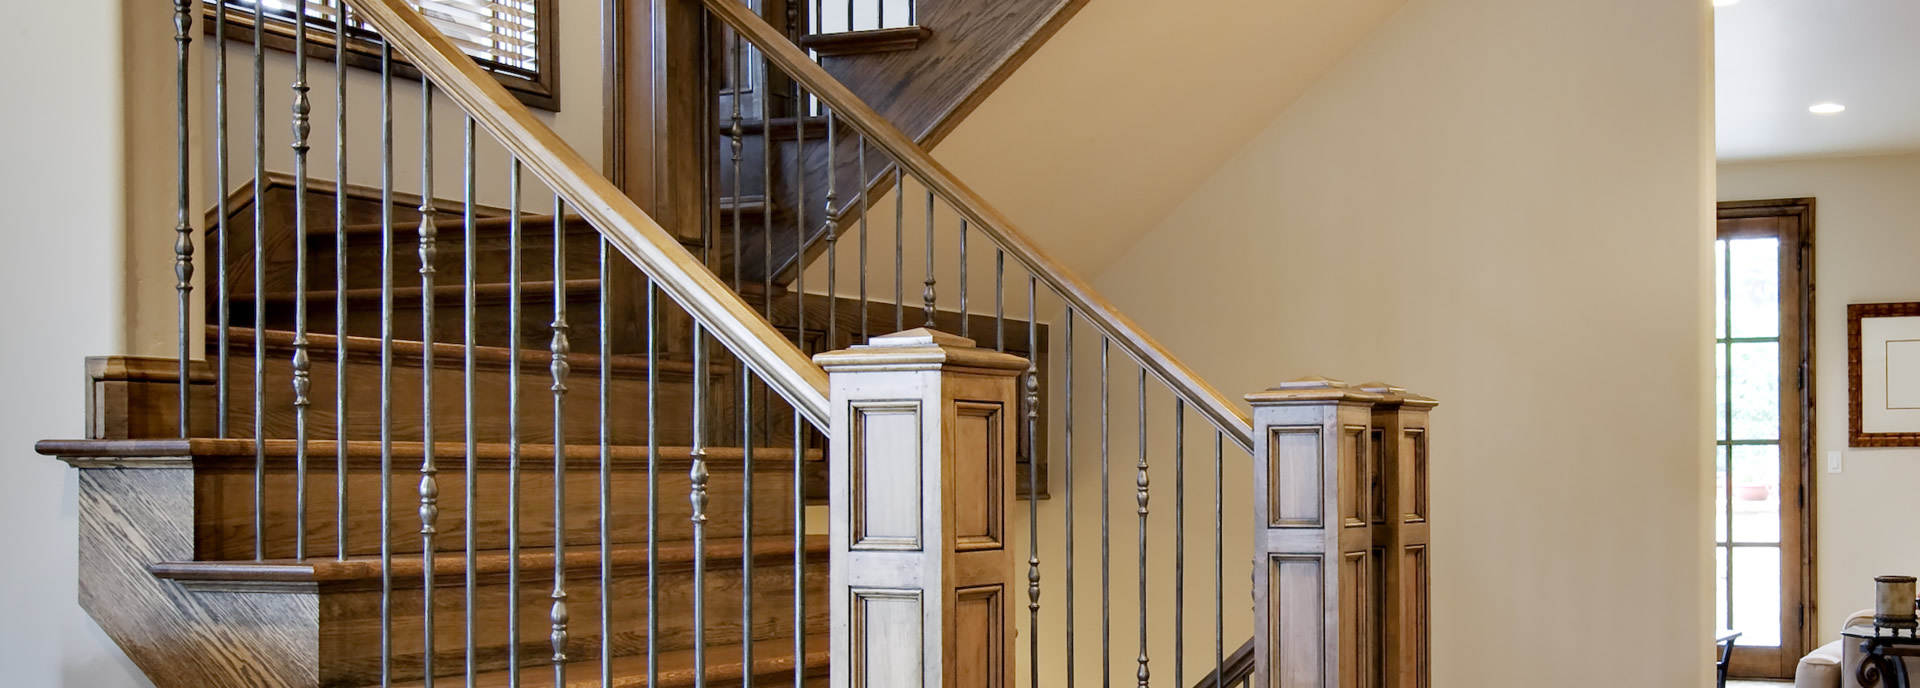 How We Create Our Custom Staircase: Part 1 Alpharetta, GA